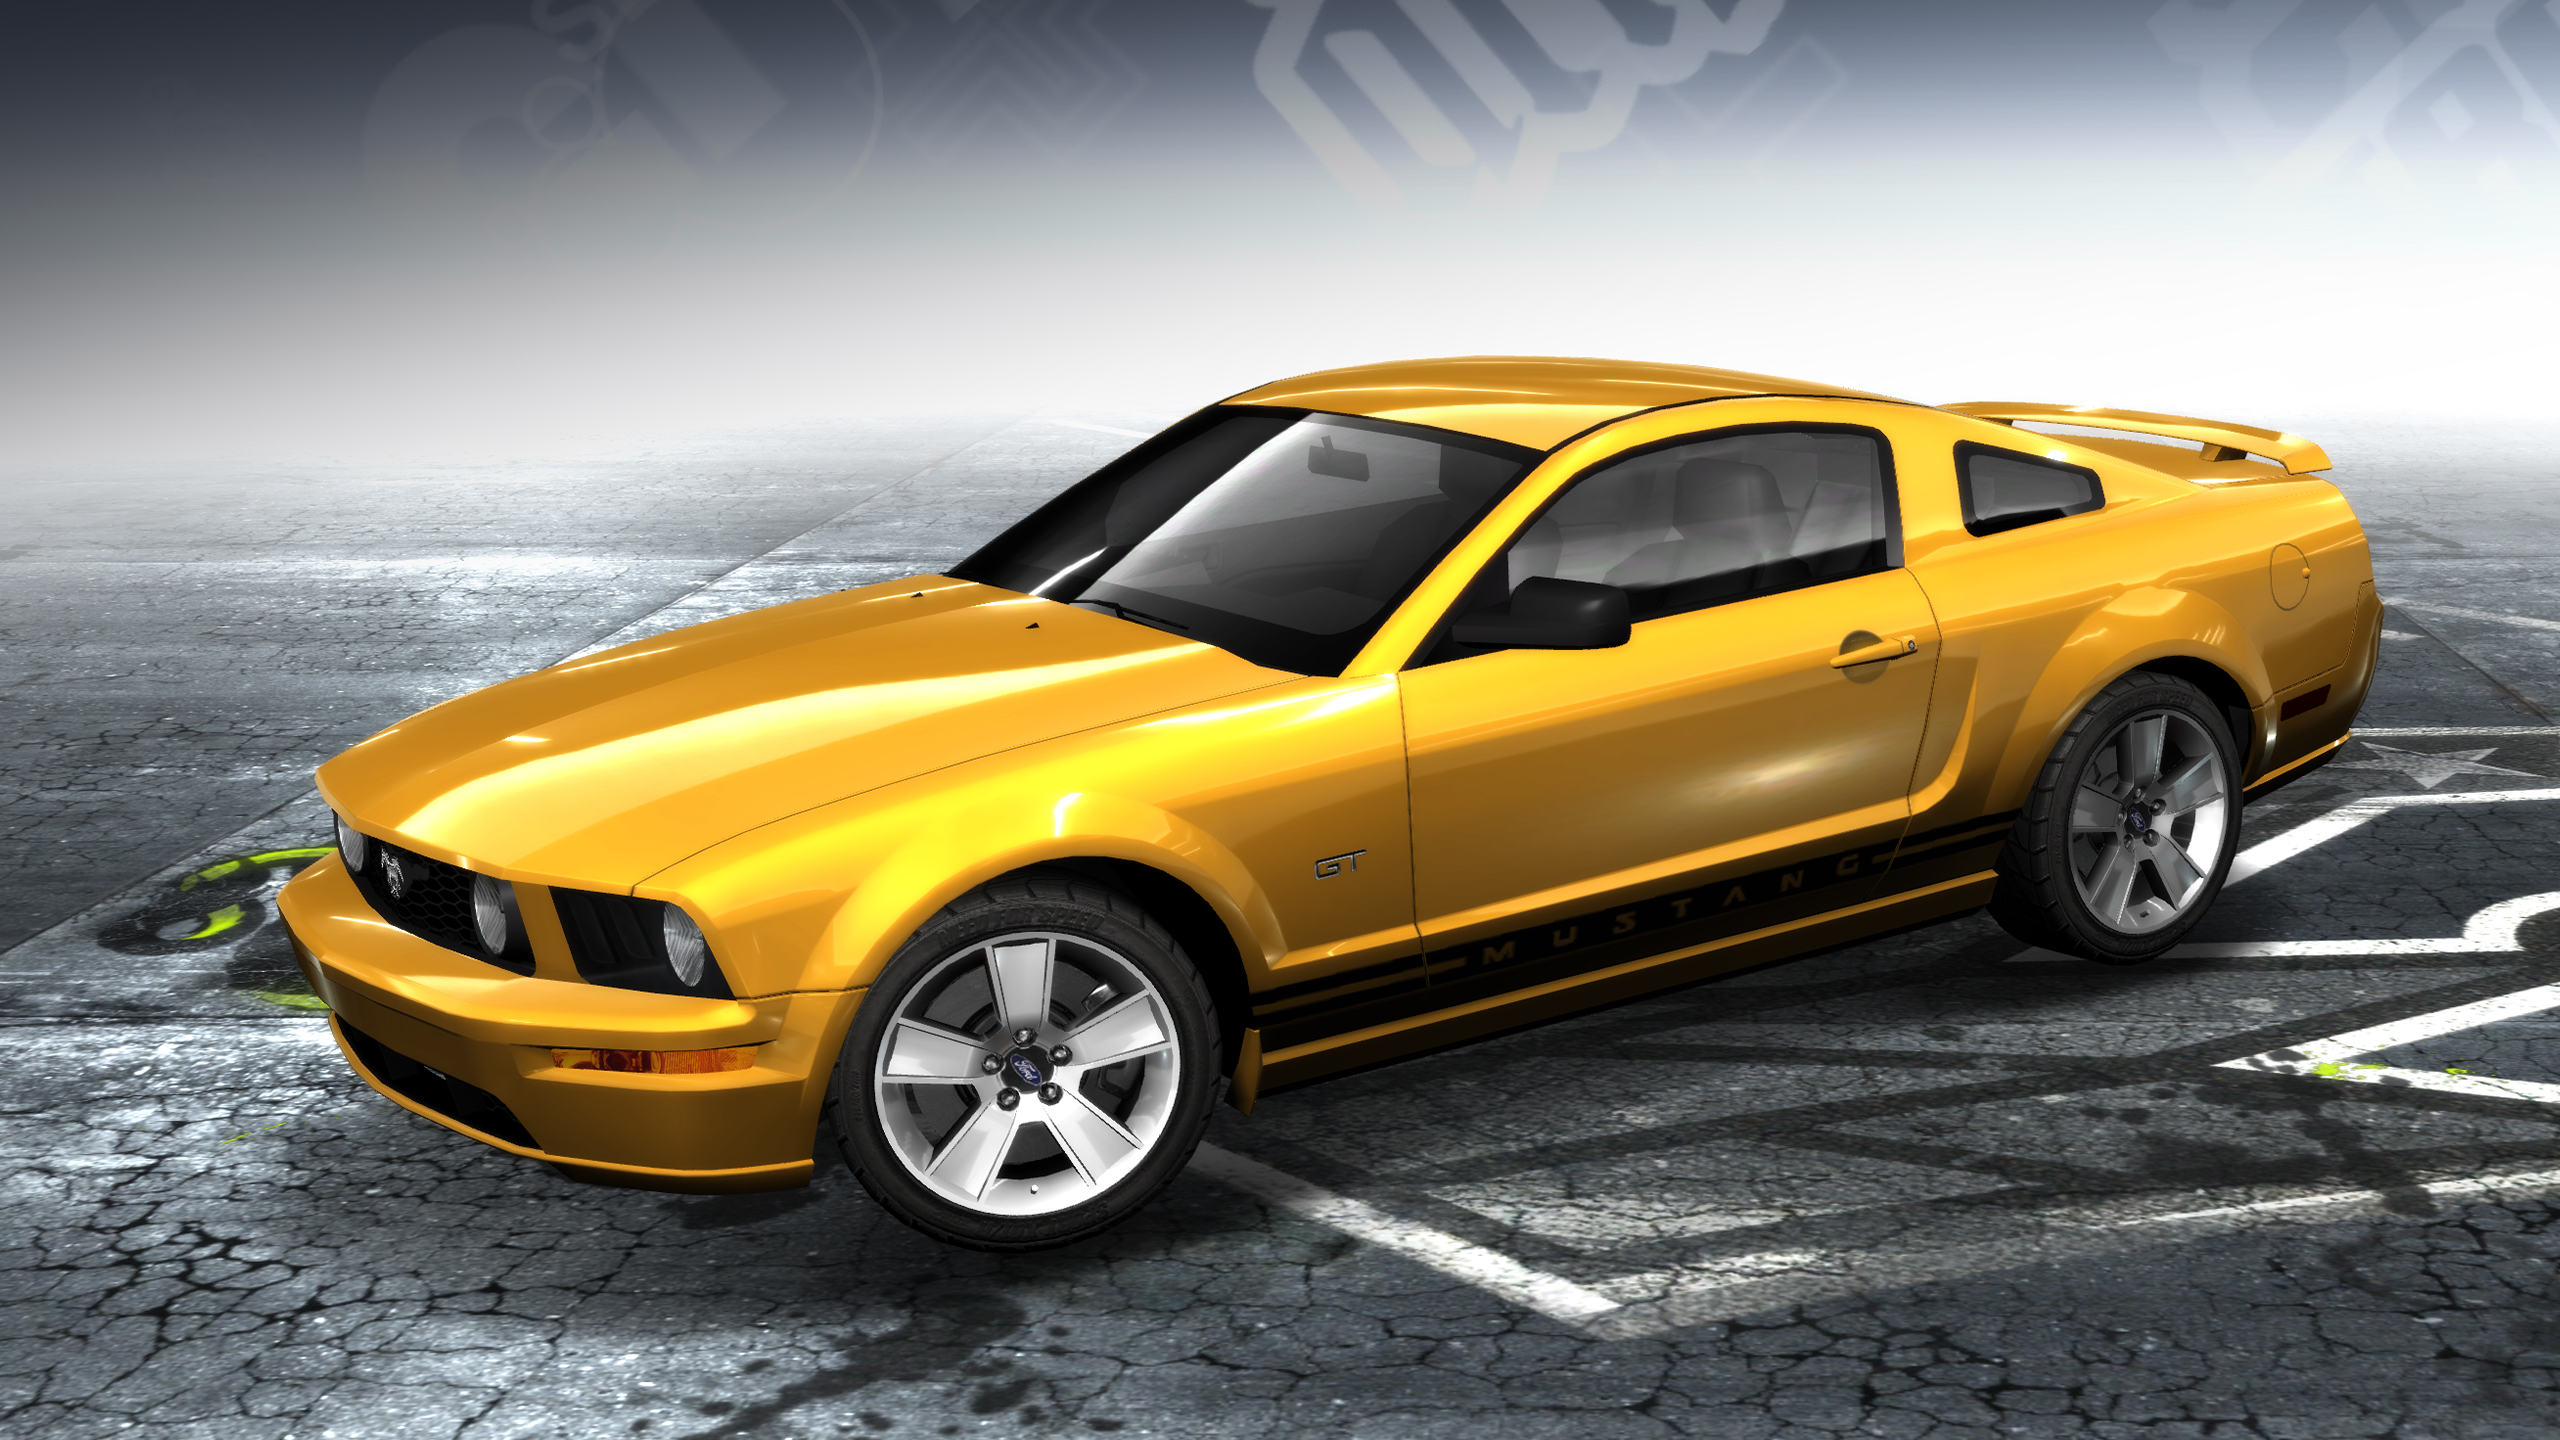 ford mustang gt gen 5 2005 need for speed wiki fandom powered by wikia. Black Bedroom Furniture Sets. Home Design Ideas